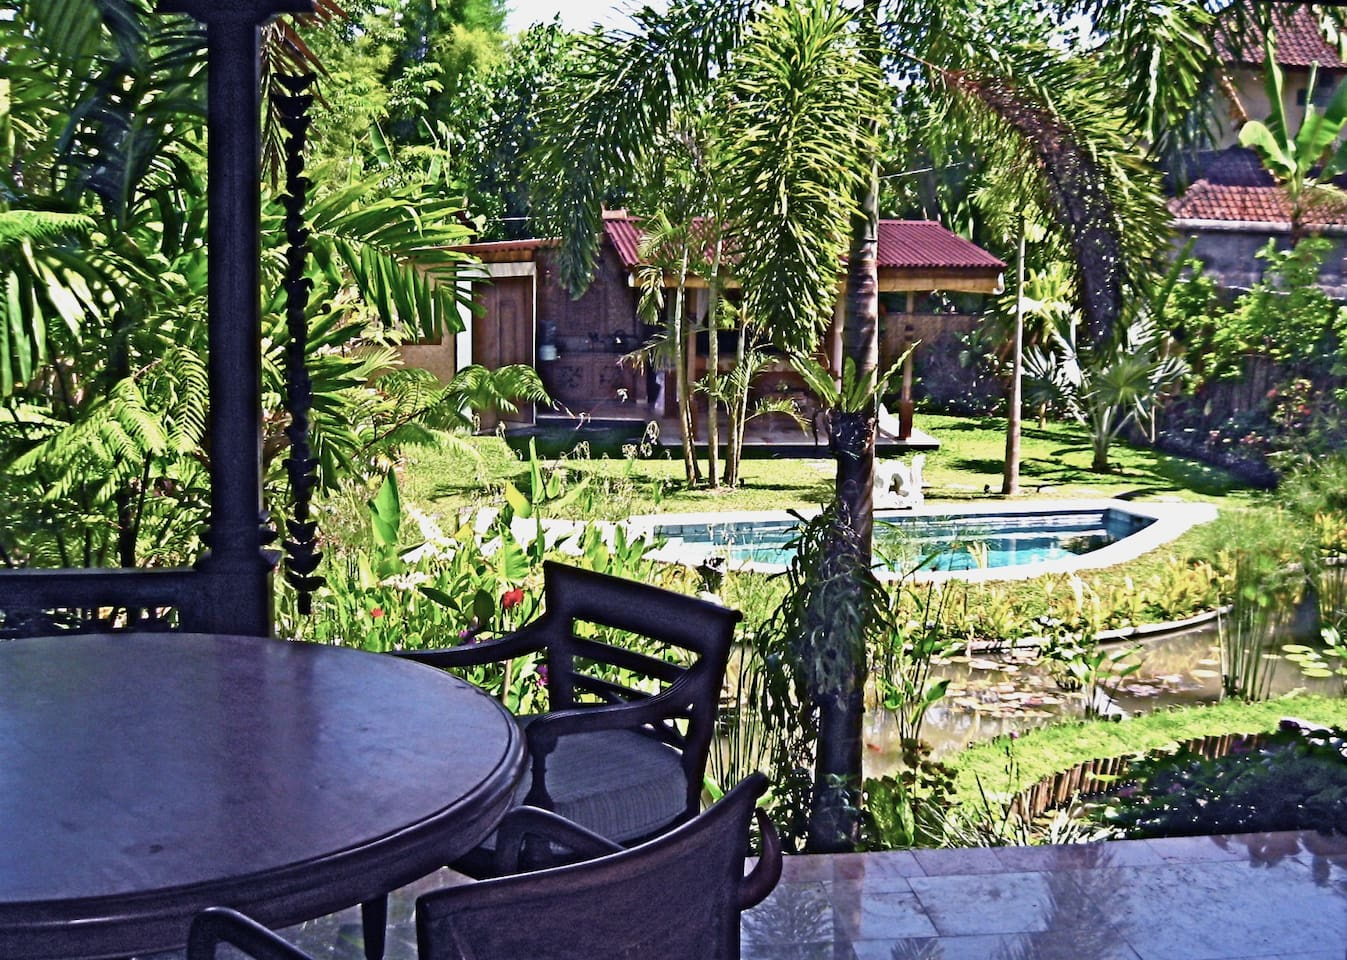 View of Mermaid Pavilion and pool from the Villa Delicious dining table.